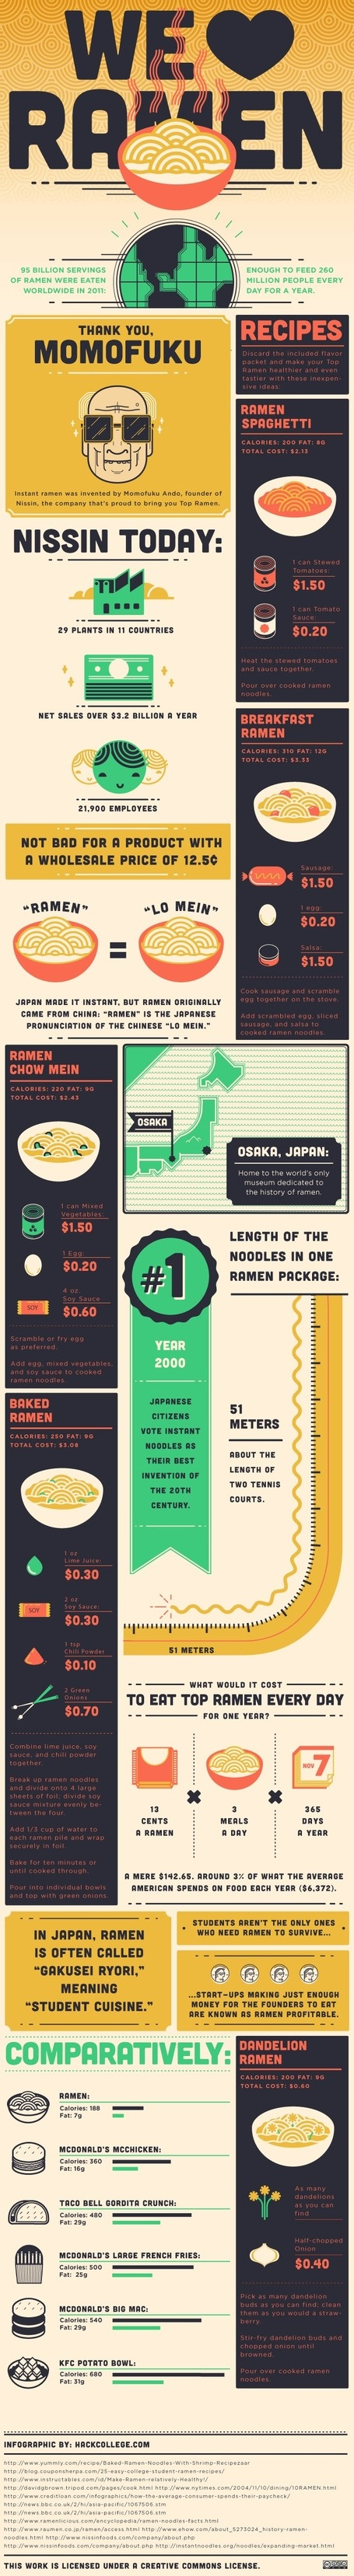 We-Love-Ramen. I don't eat ramen just because i'm poor... if i were rich i would still eat it because it's the best!